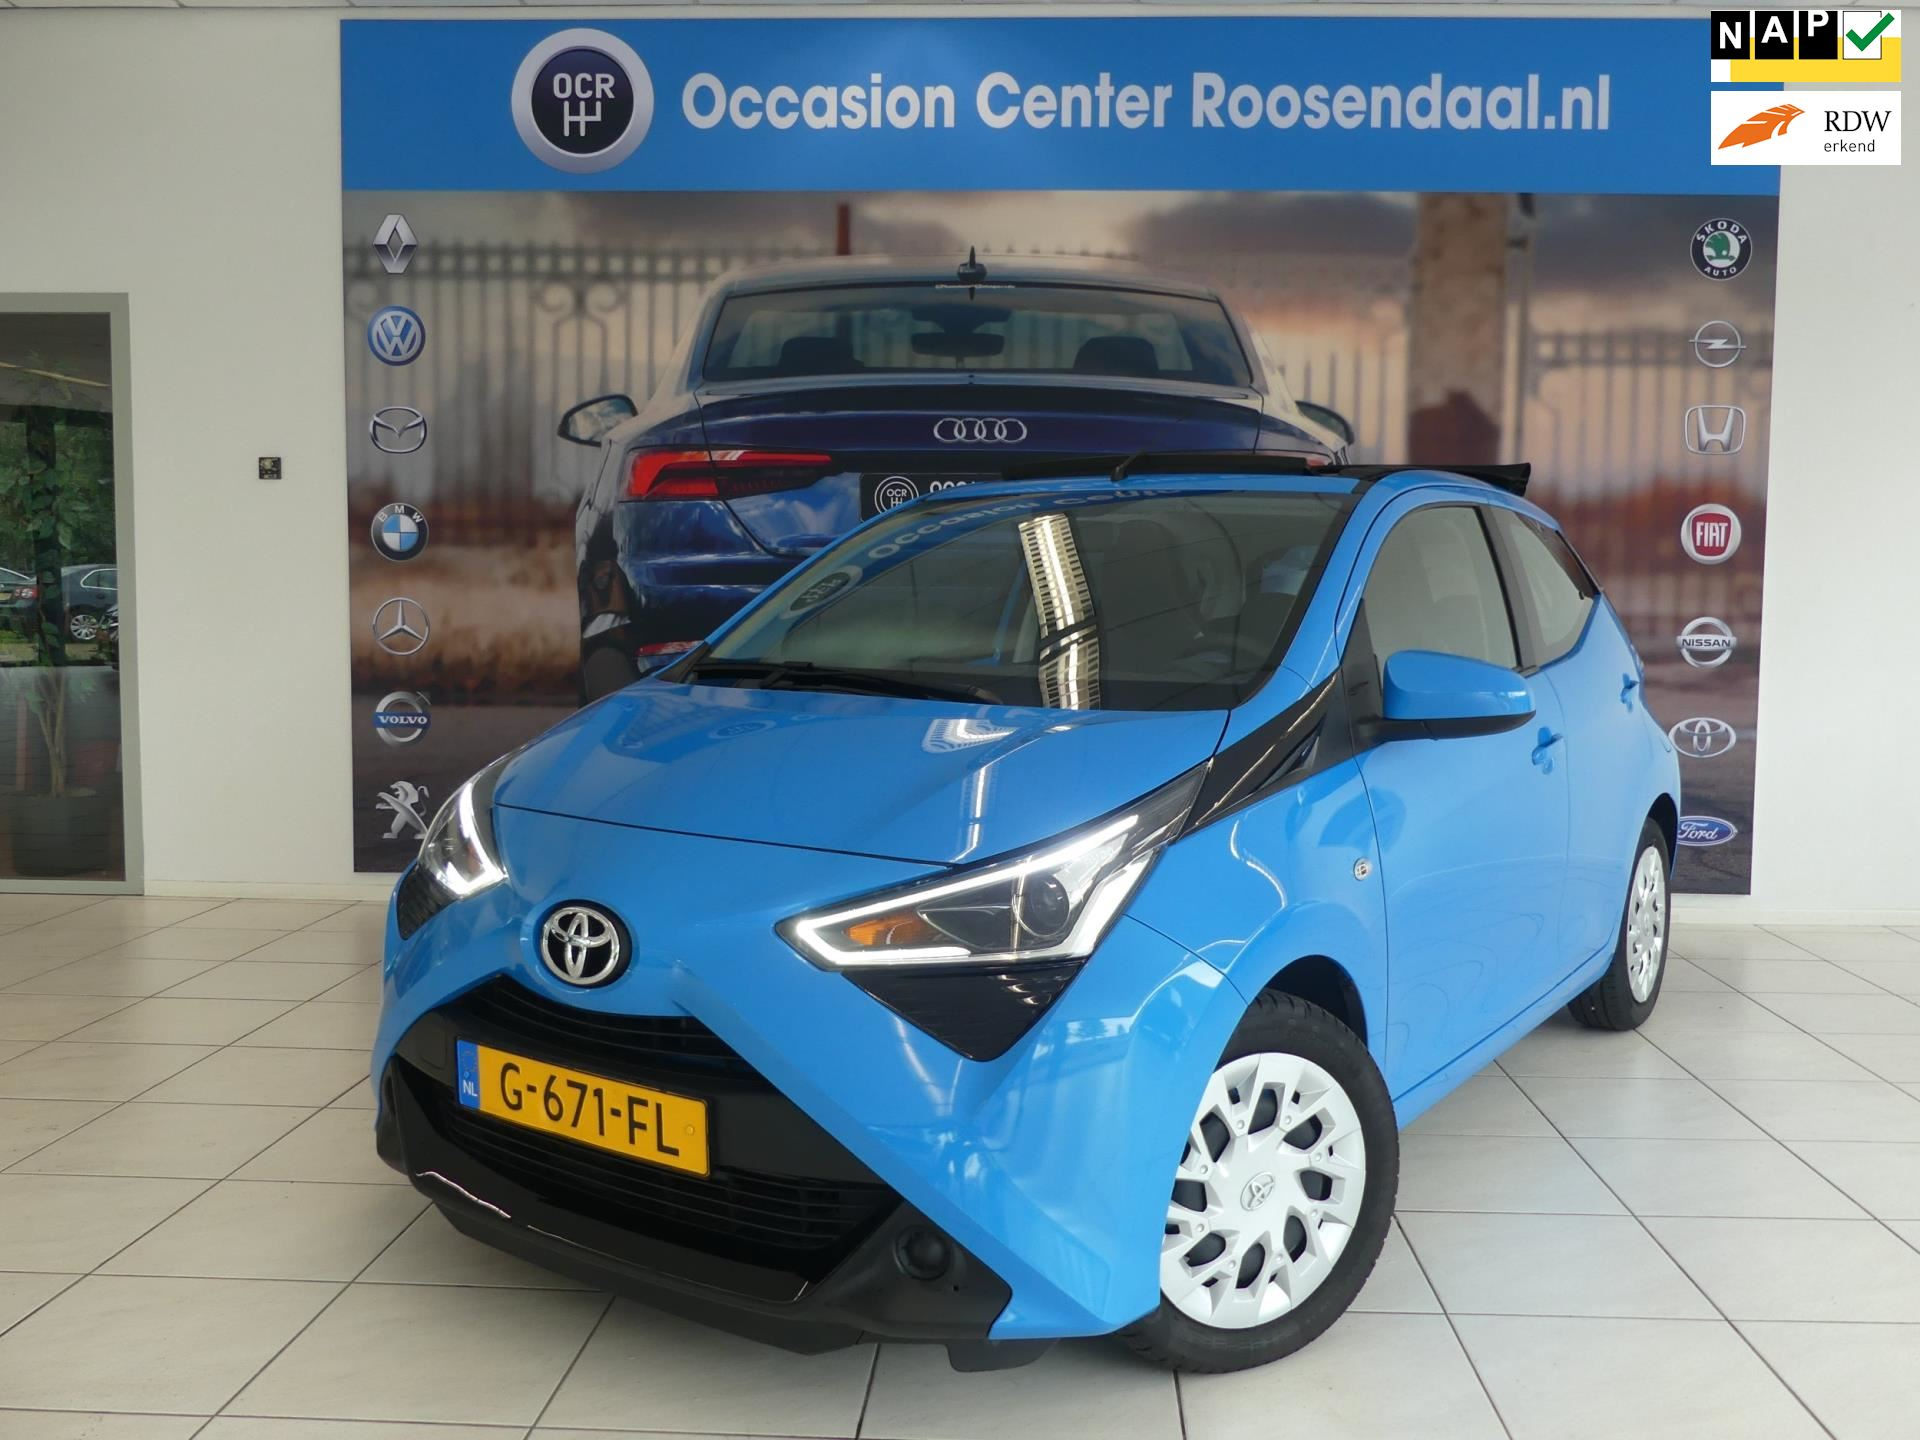 Toyota Aygo occasion - Occasion Center Roosendaal